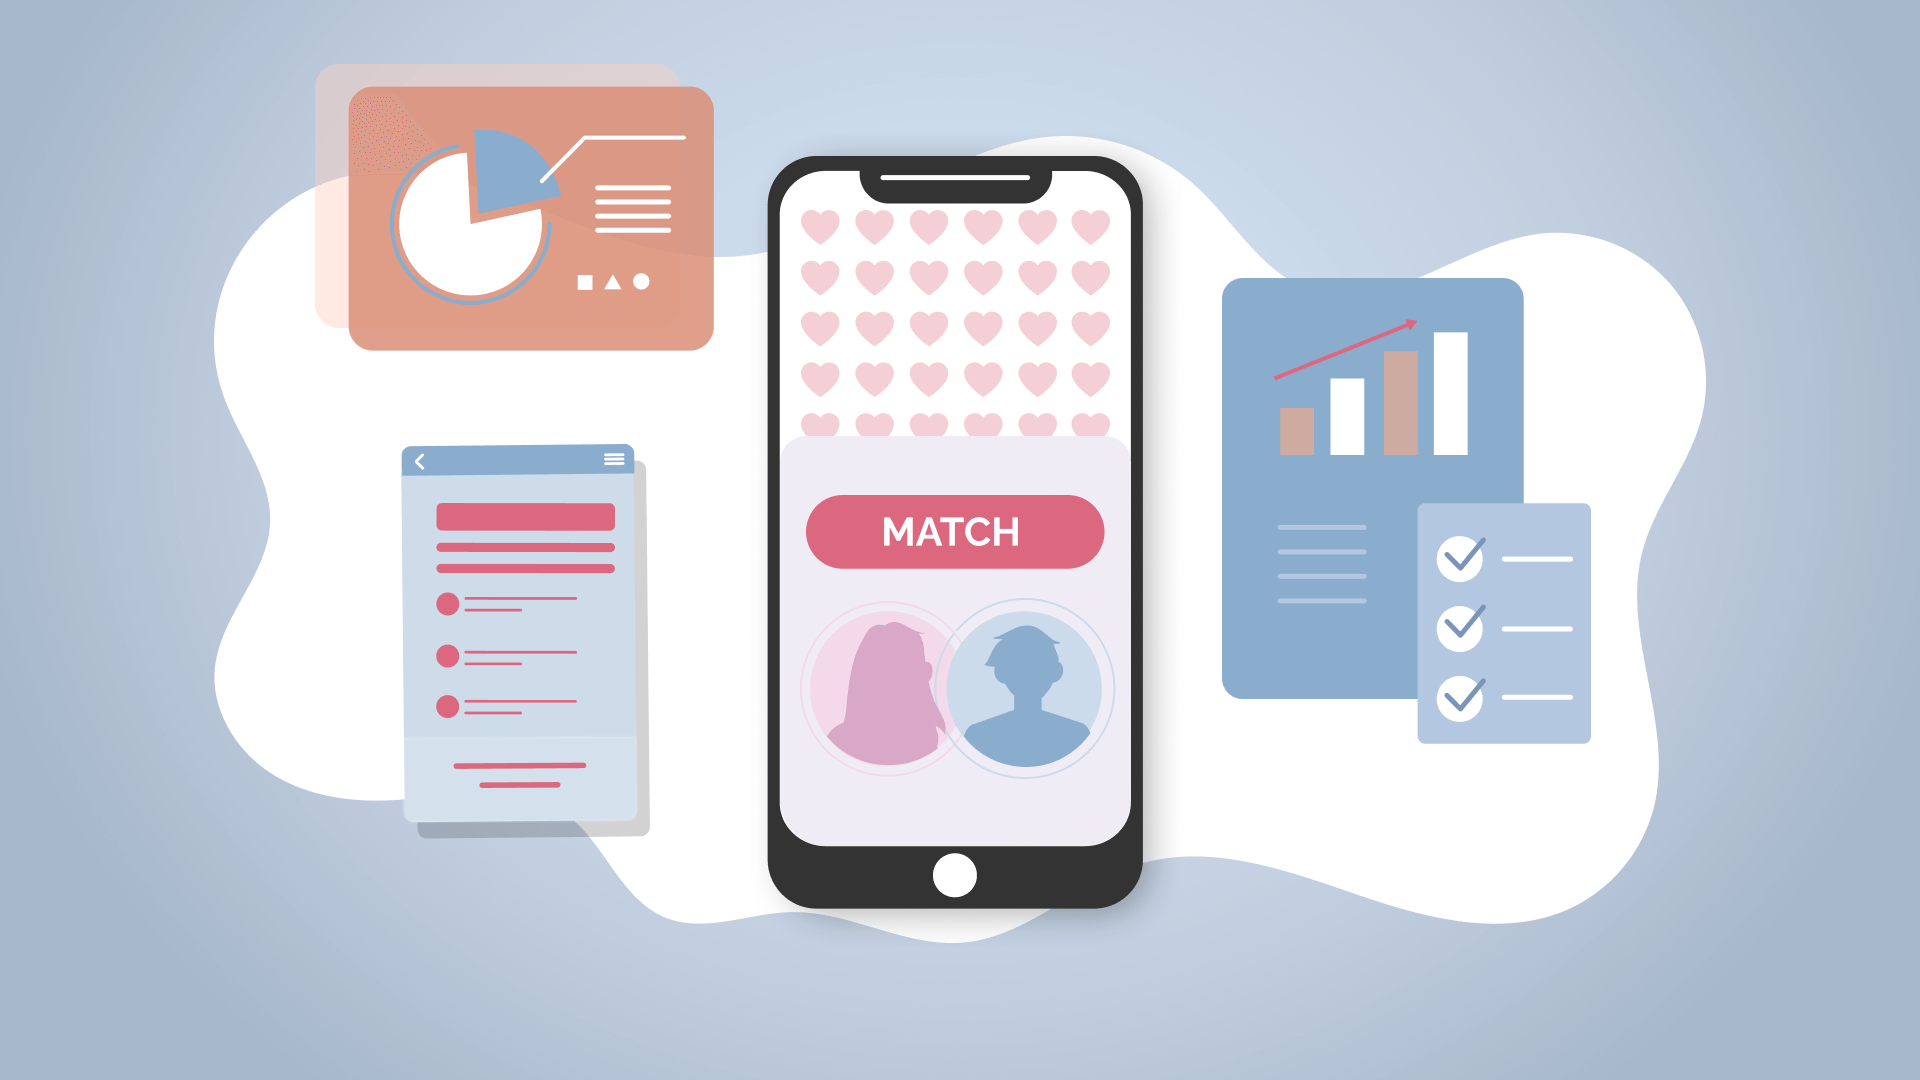 Online dating platforms' market share, tendencies, and trends.